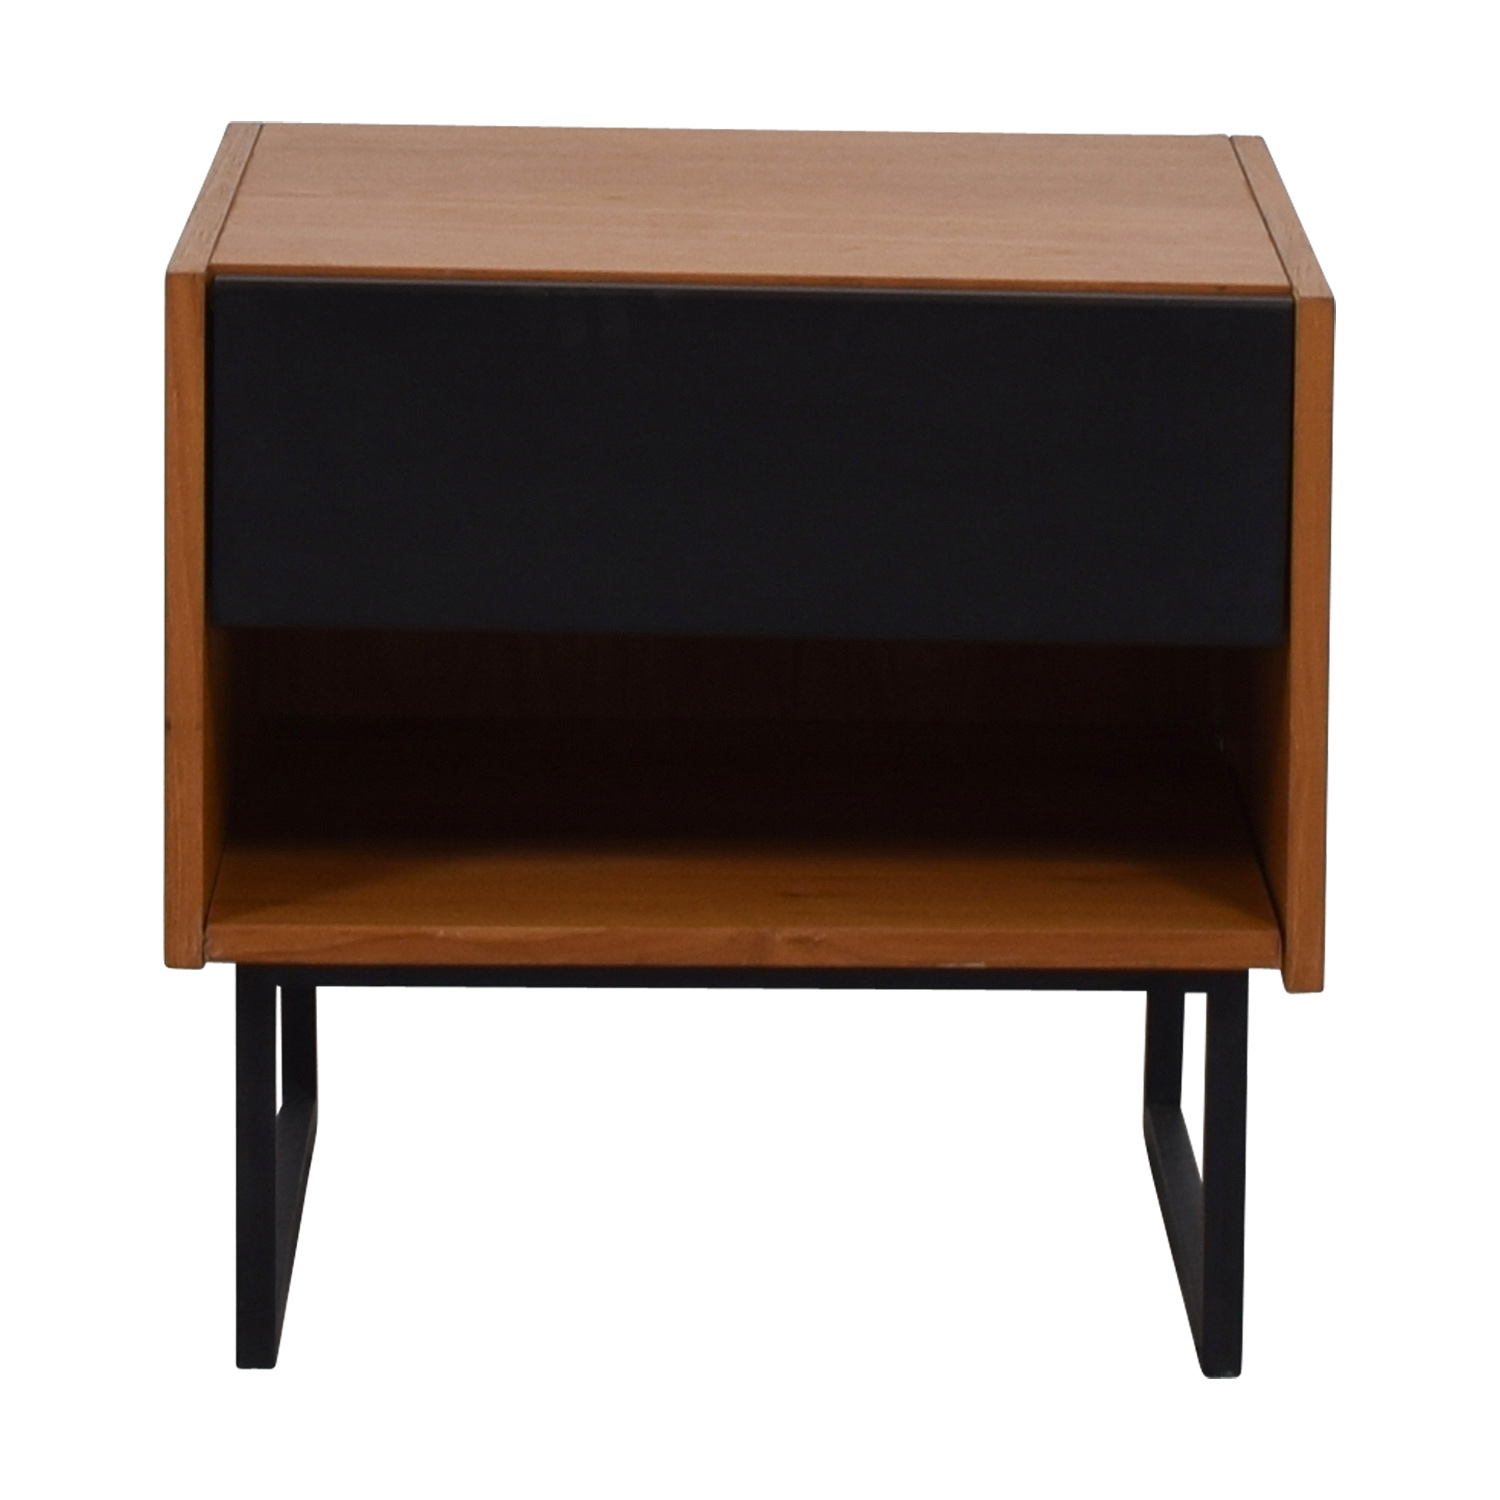 Crate & Barrel Crate & Barrel Single Drawer Side Table nyc